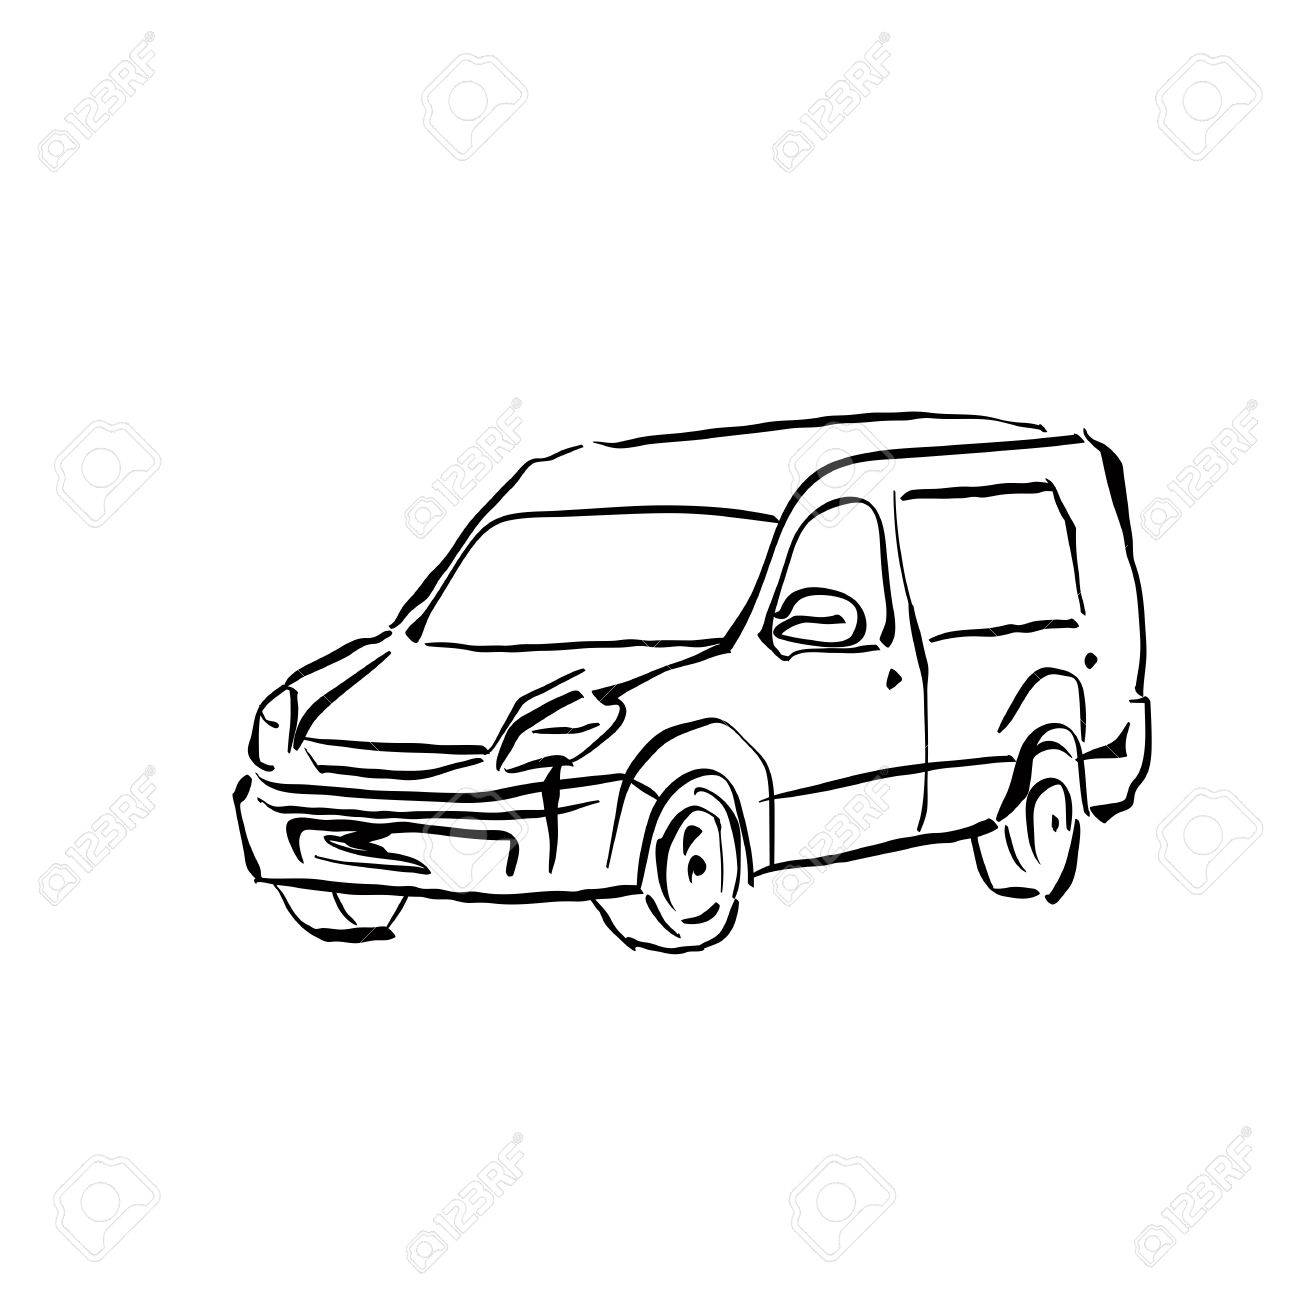 1300x1300 Black And White Hand Drawn Car On White Background, Illustrated